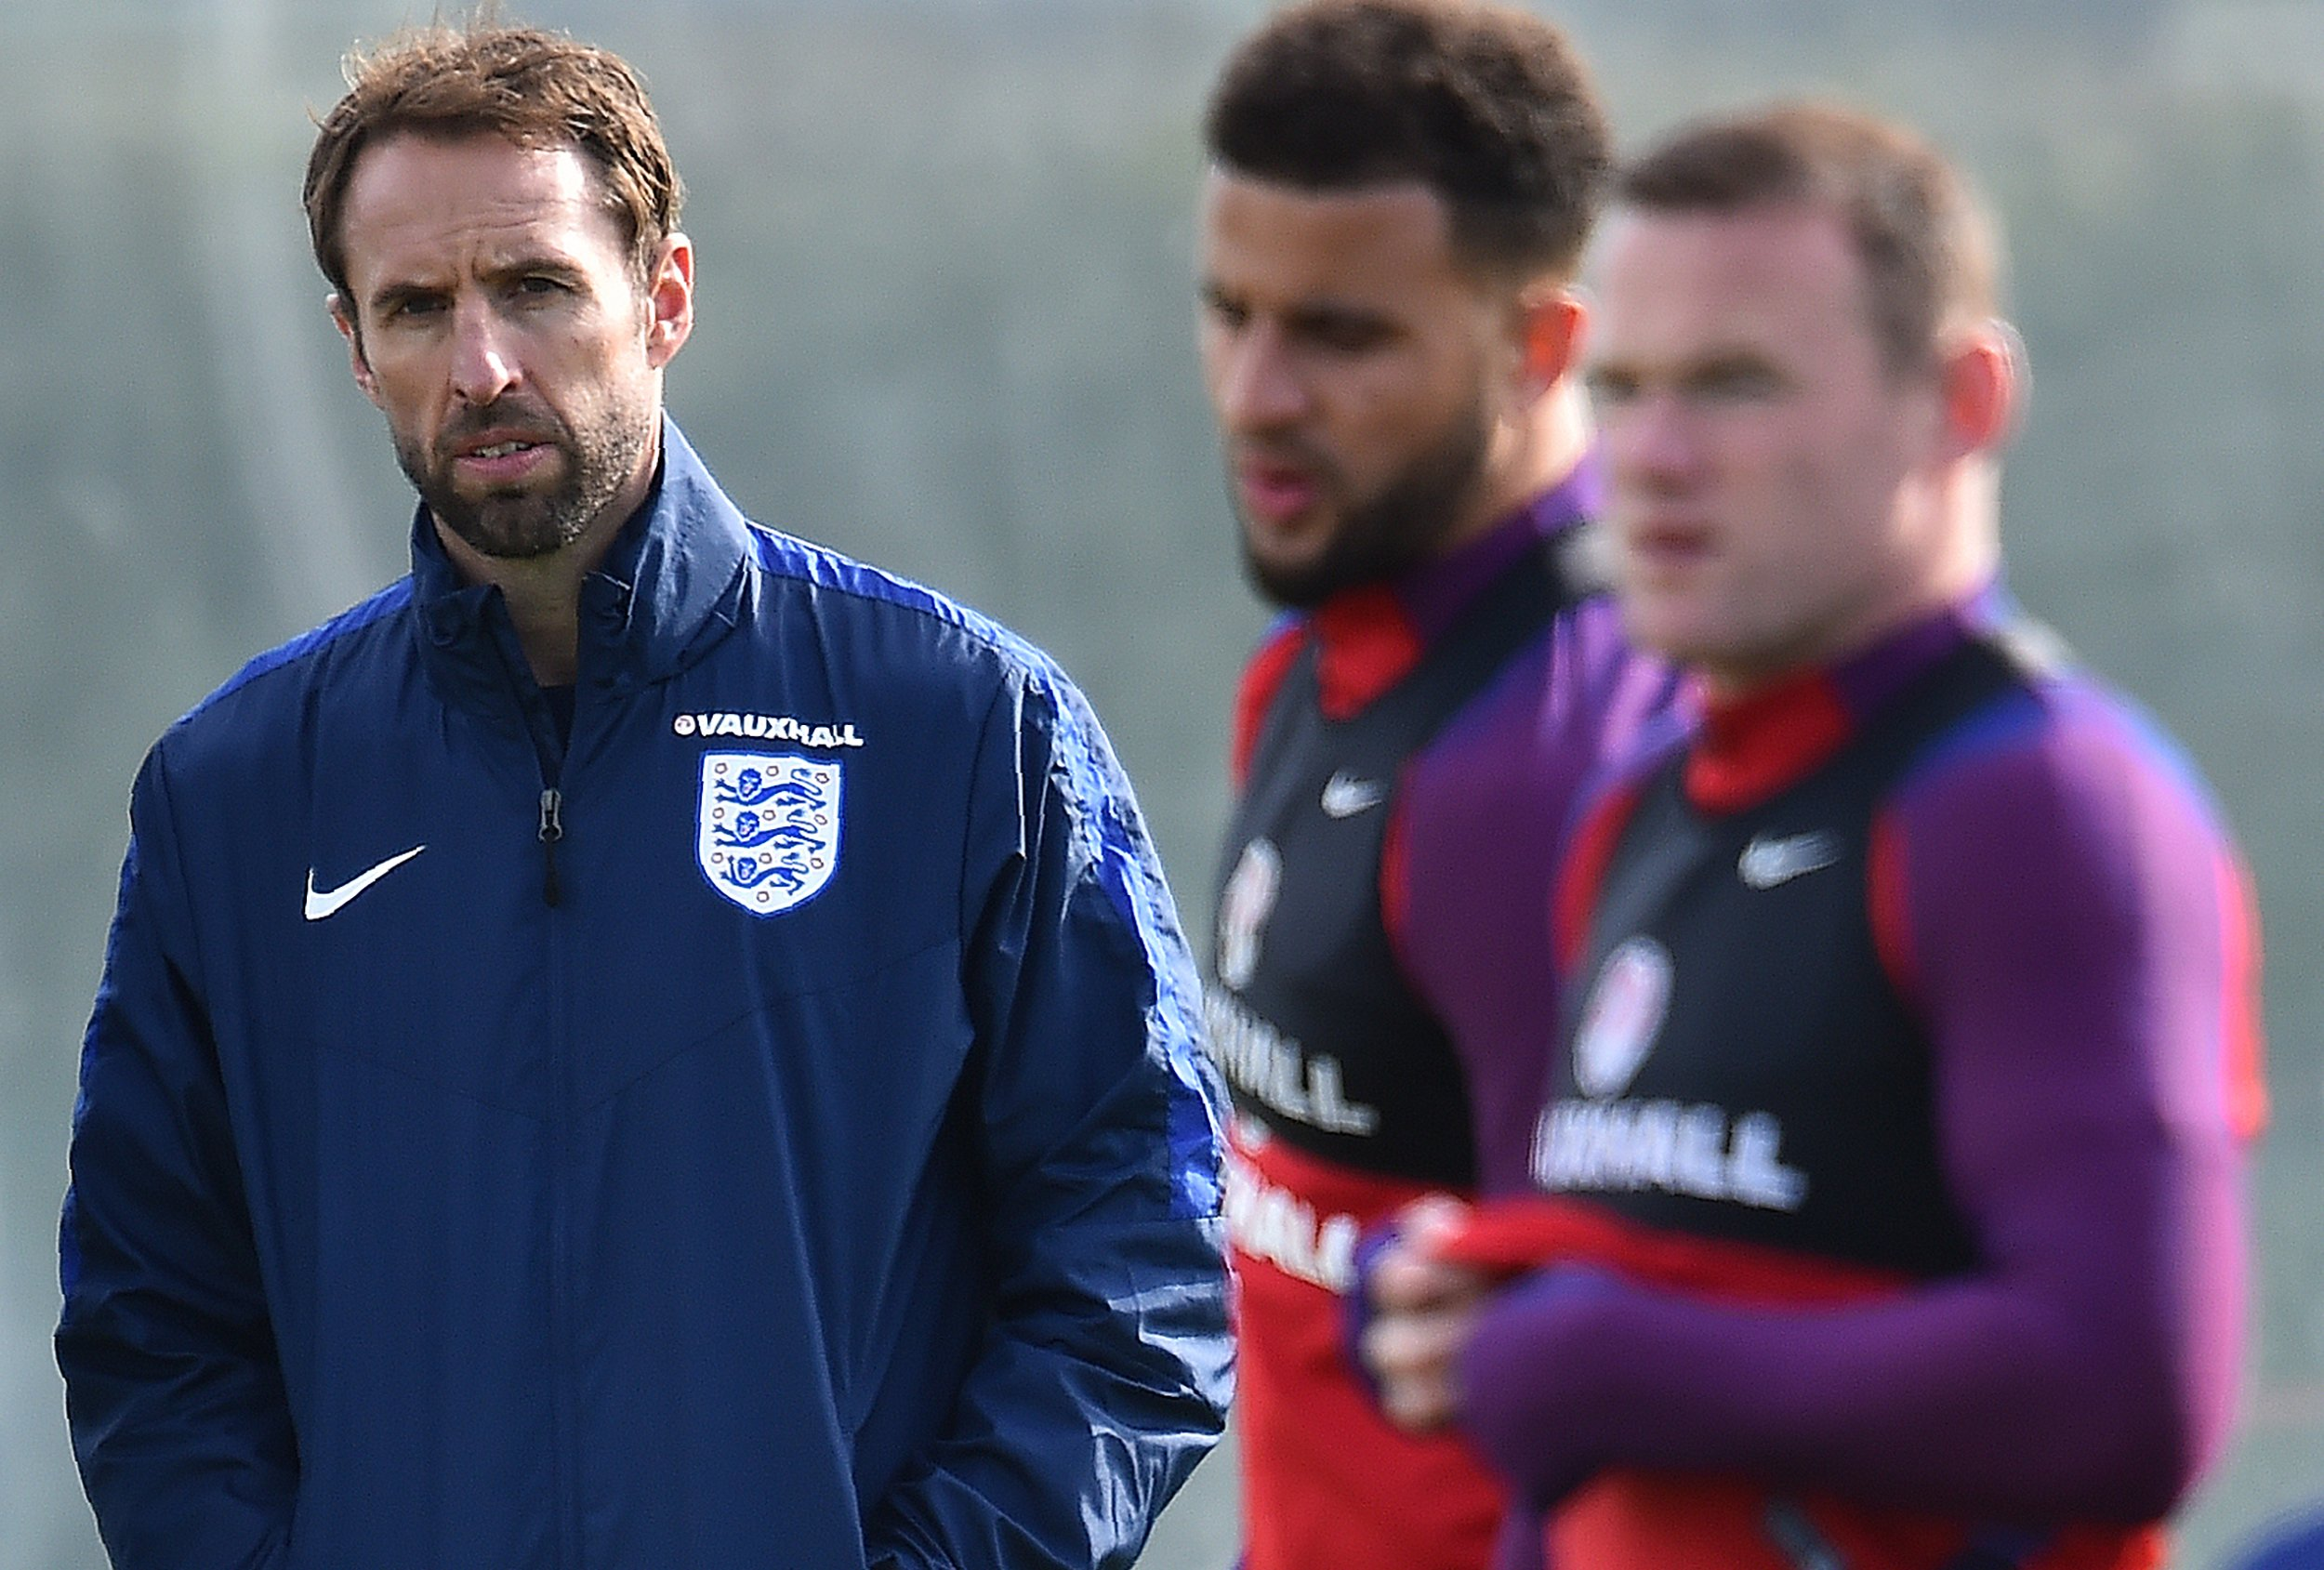 England interim manager Gareth Southgate, left, with captain Wayne Rooney, right.